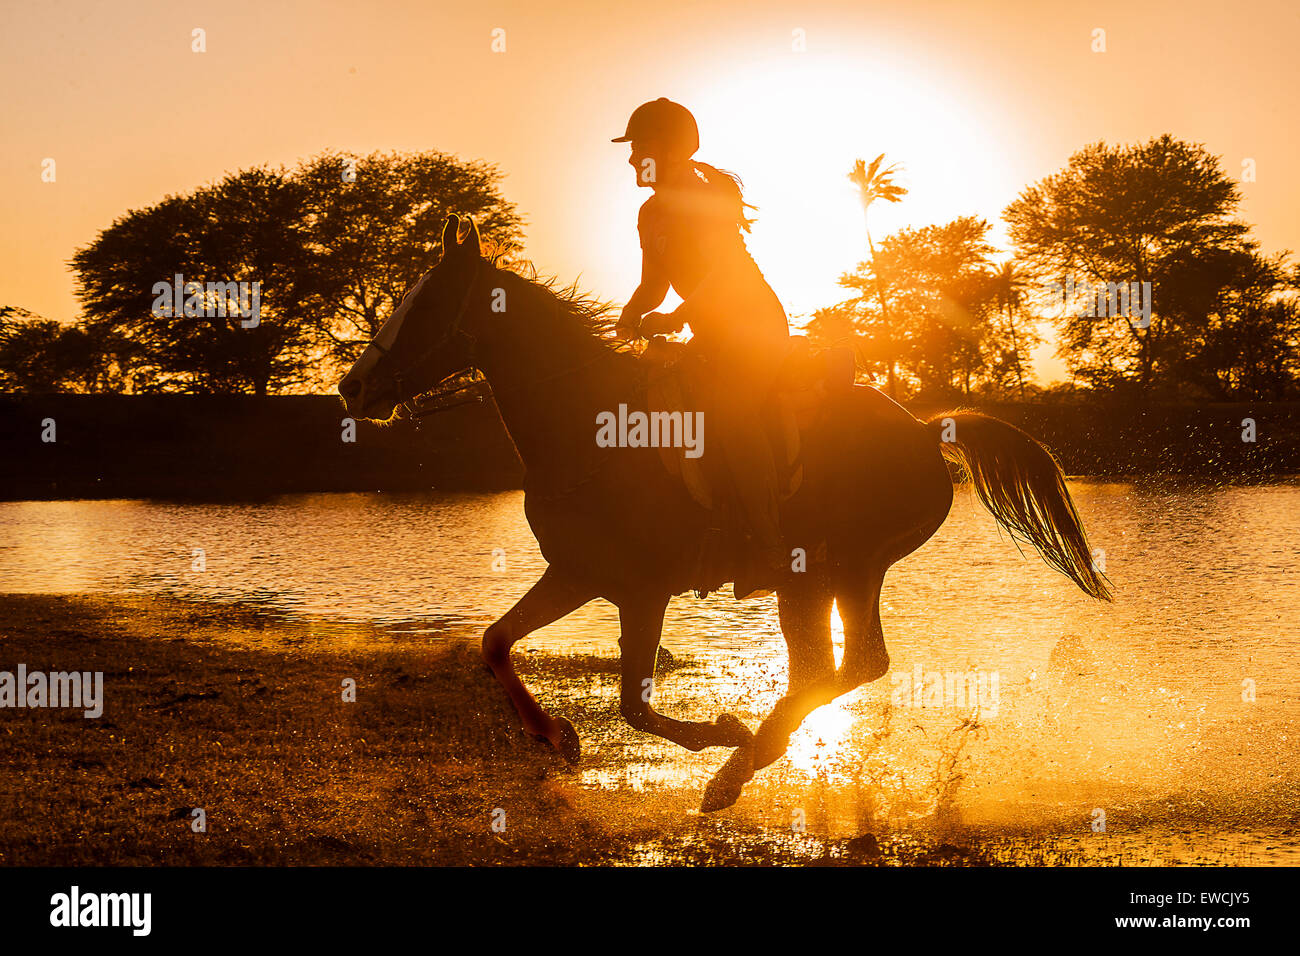 Kathiawari Horse. Woman rider galloping on a chestnut mare, silhouetted against the setting sun. Rajasthan, India Stock Photo